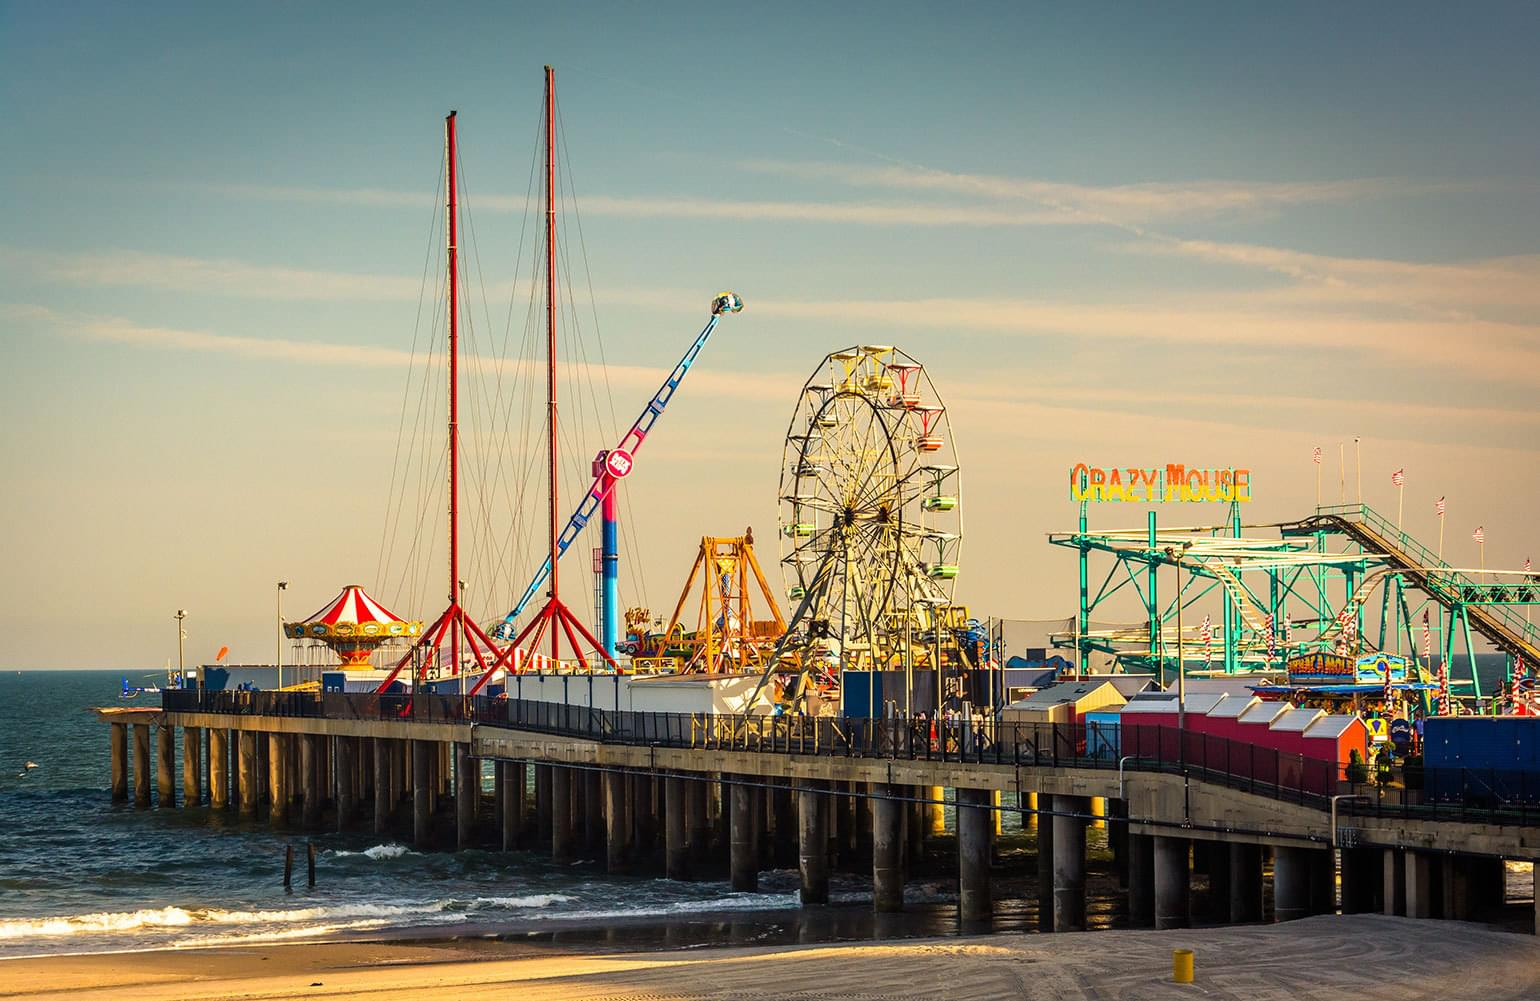 The Ferris wheel and other family rides on Atlantic City's Steel Pier.